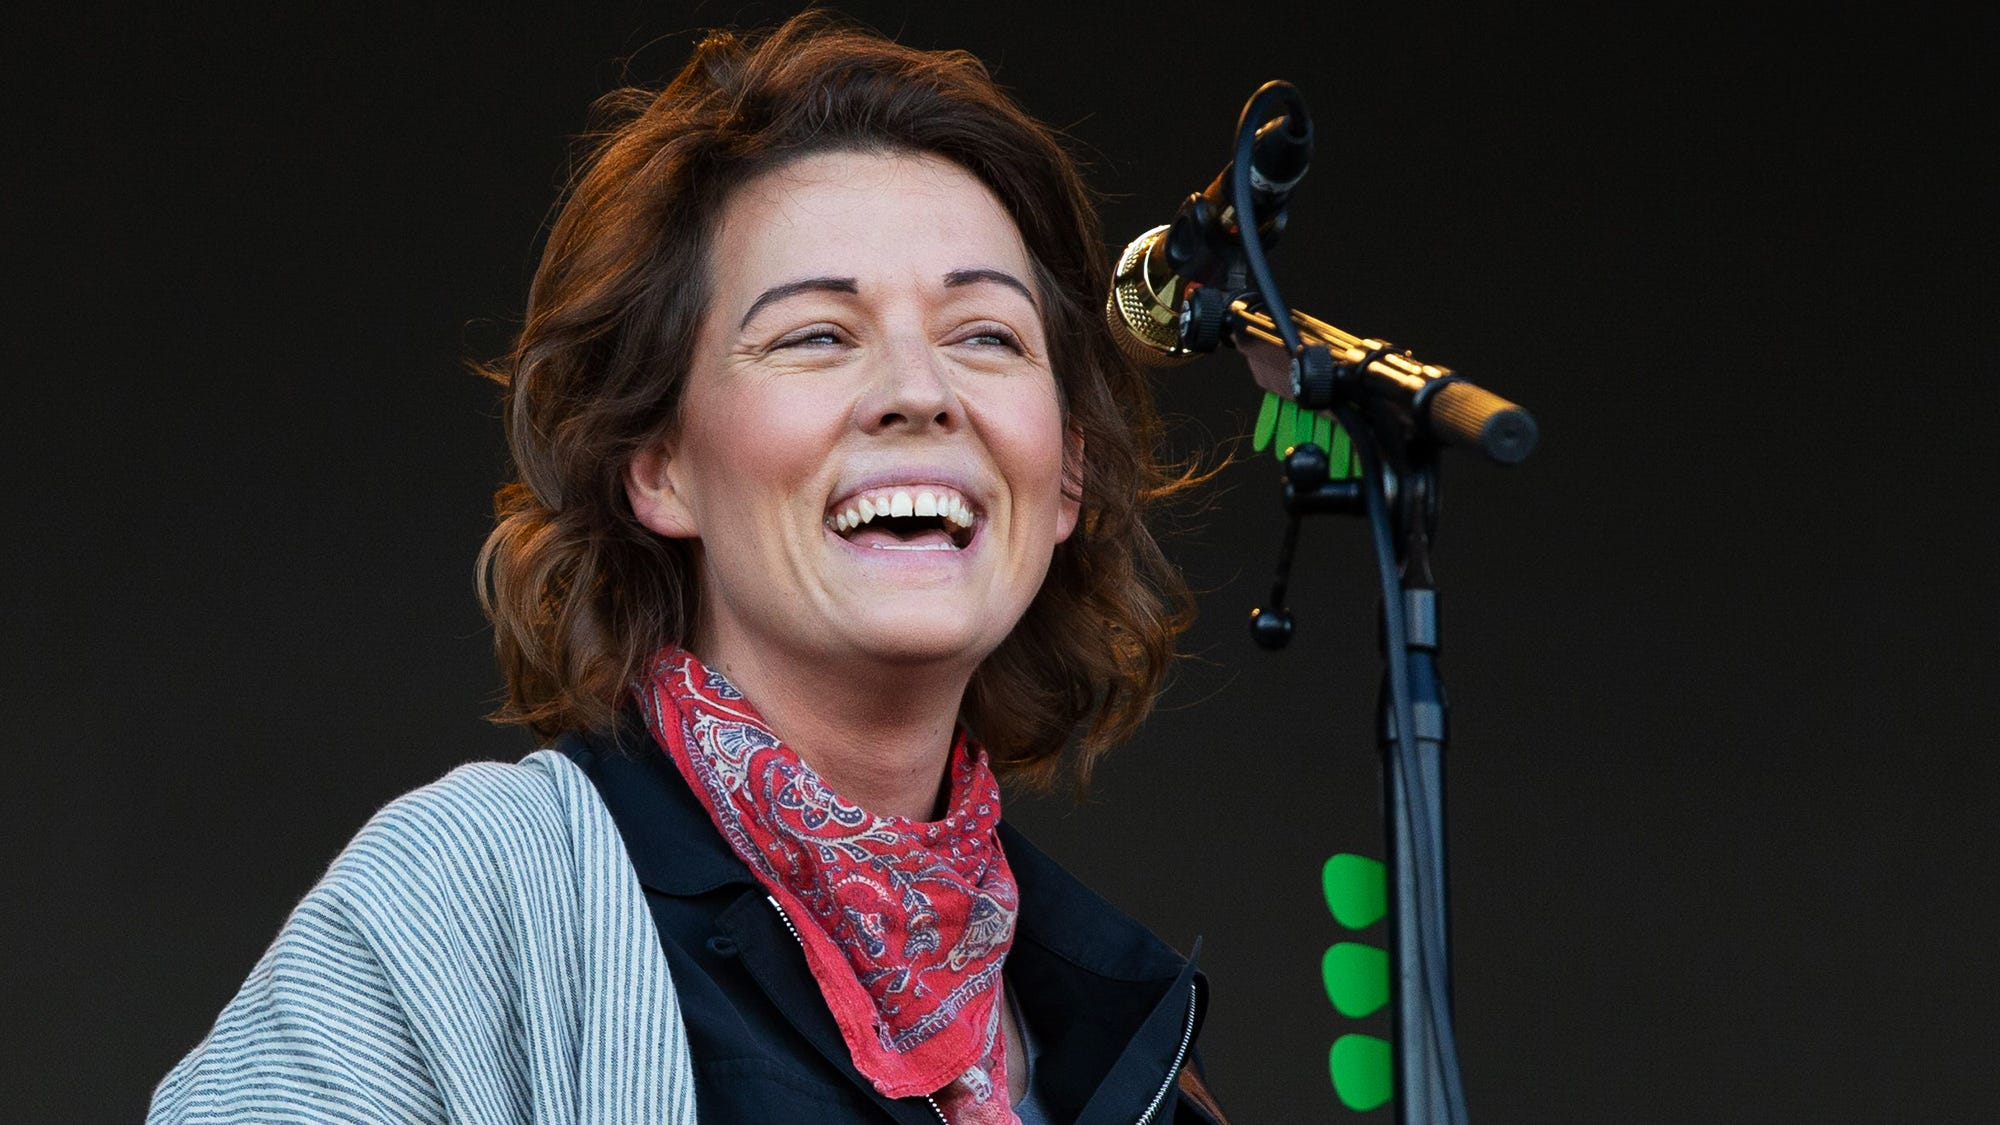 If You Want More Brandi Carlile In Your Life, Start With These Songs